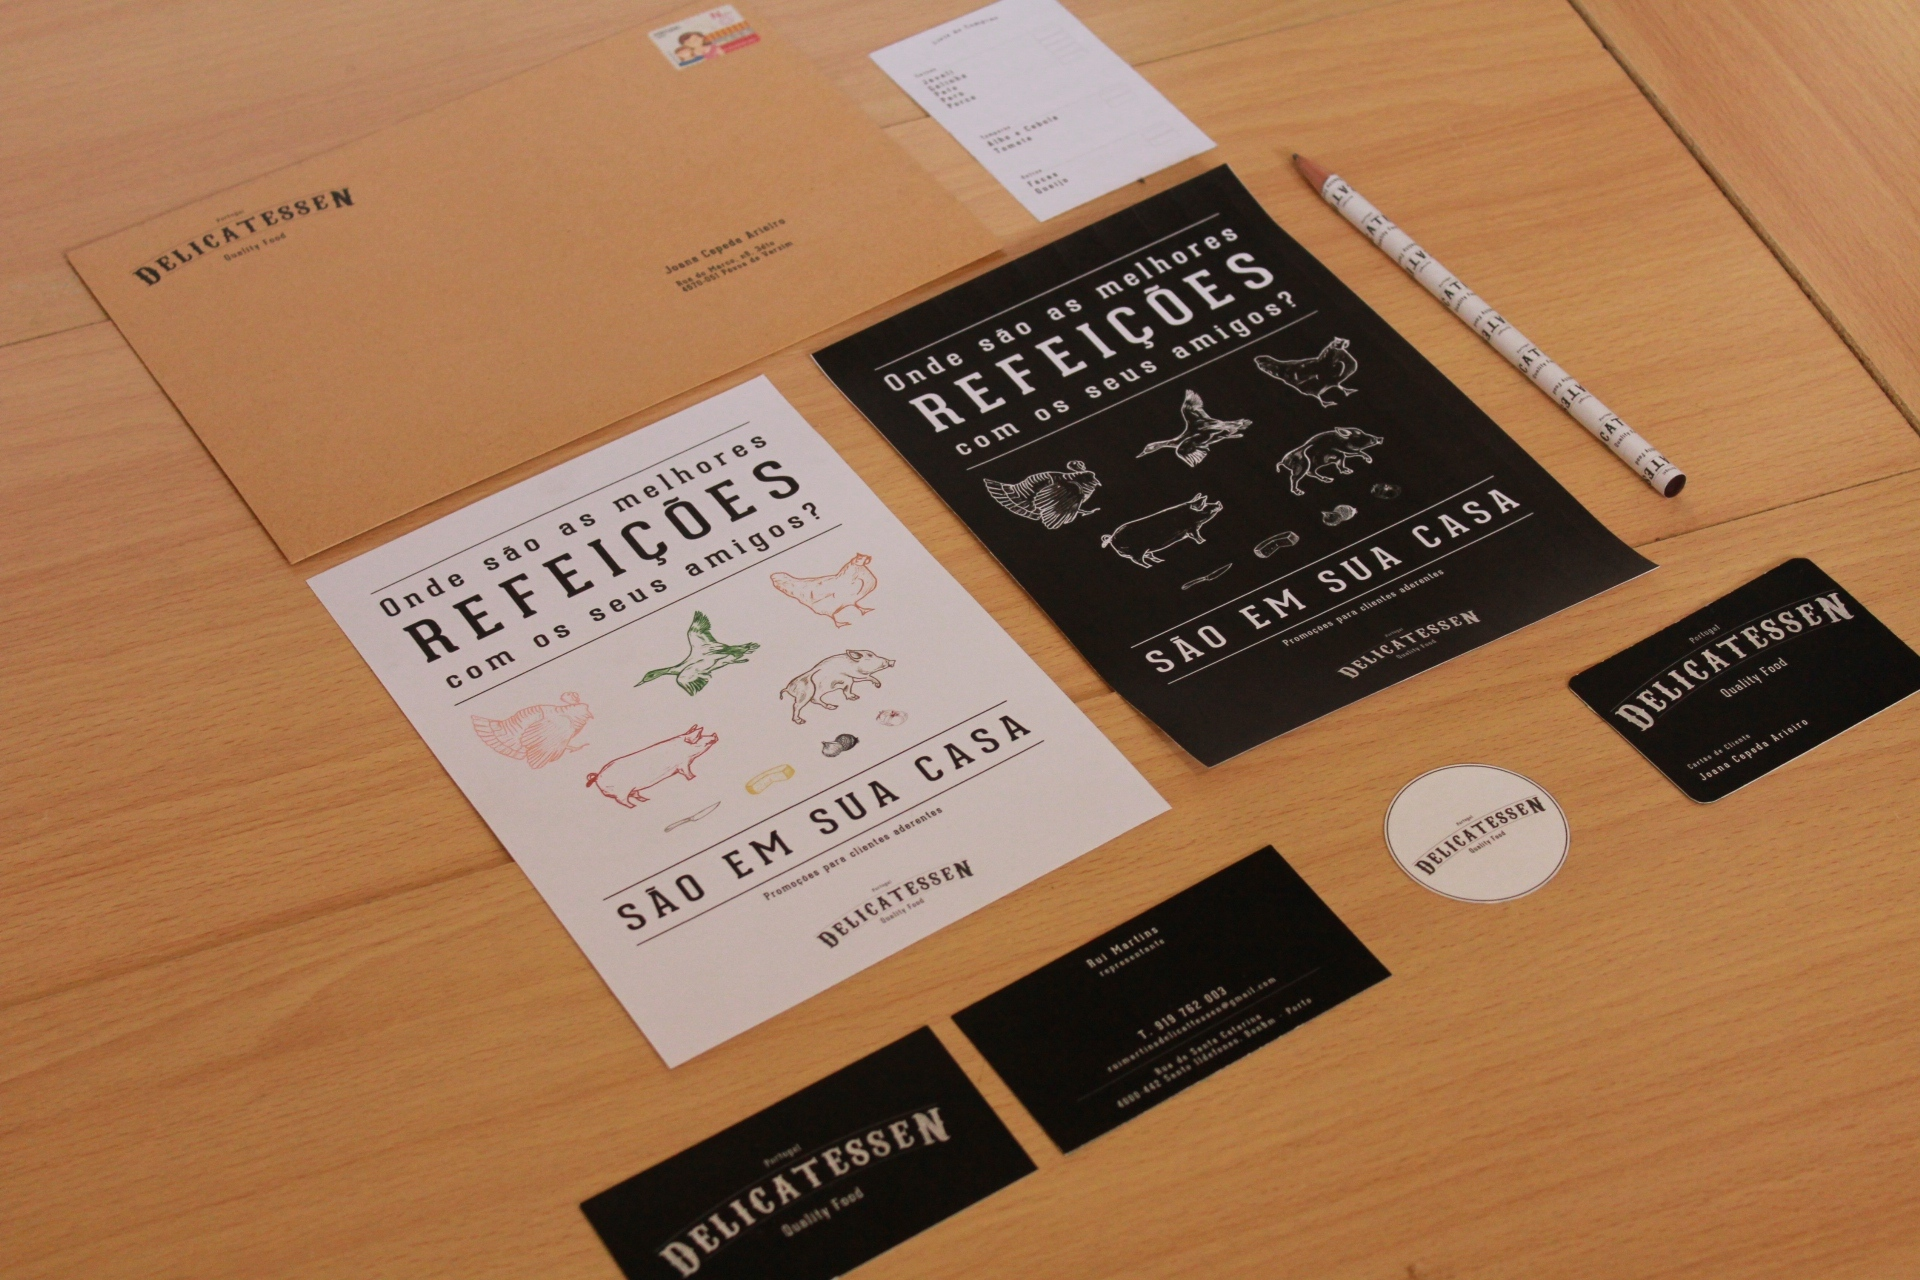 Delicatessen butcher stationary flyers and merch